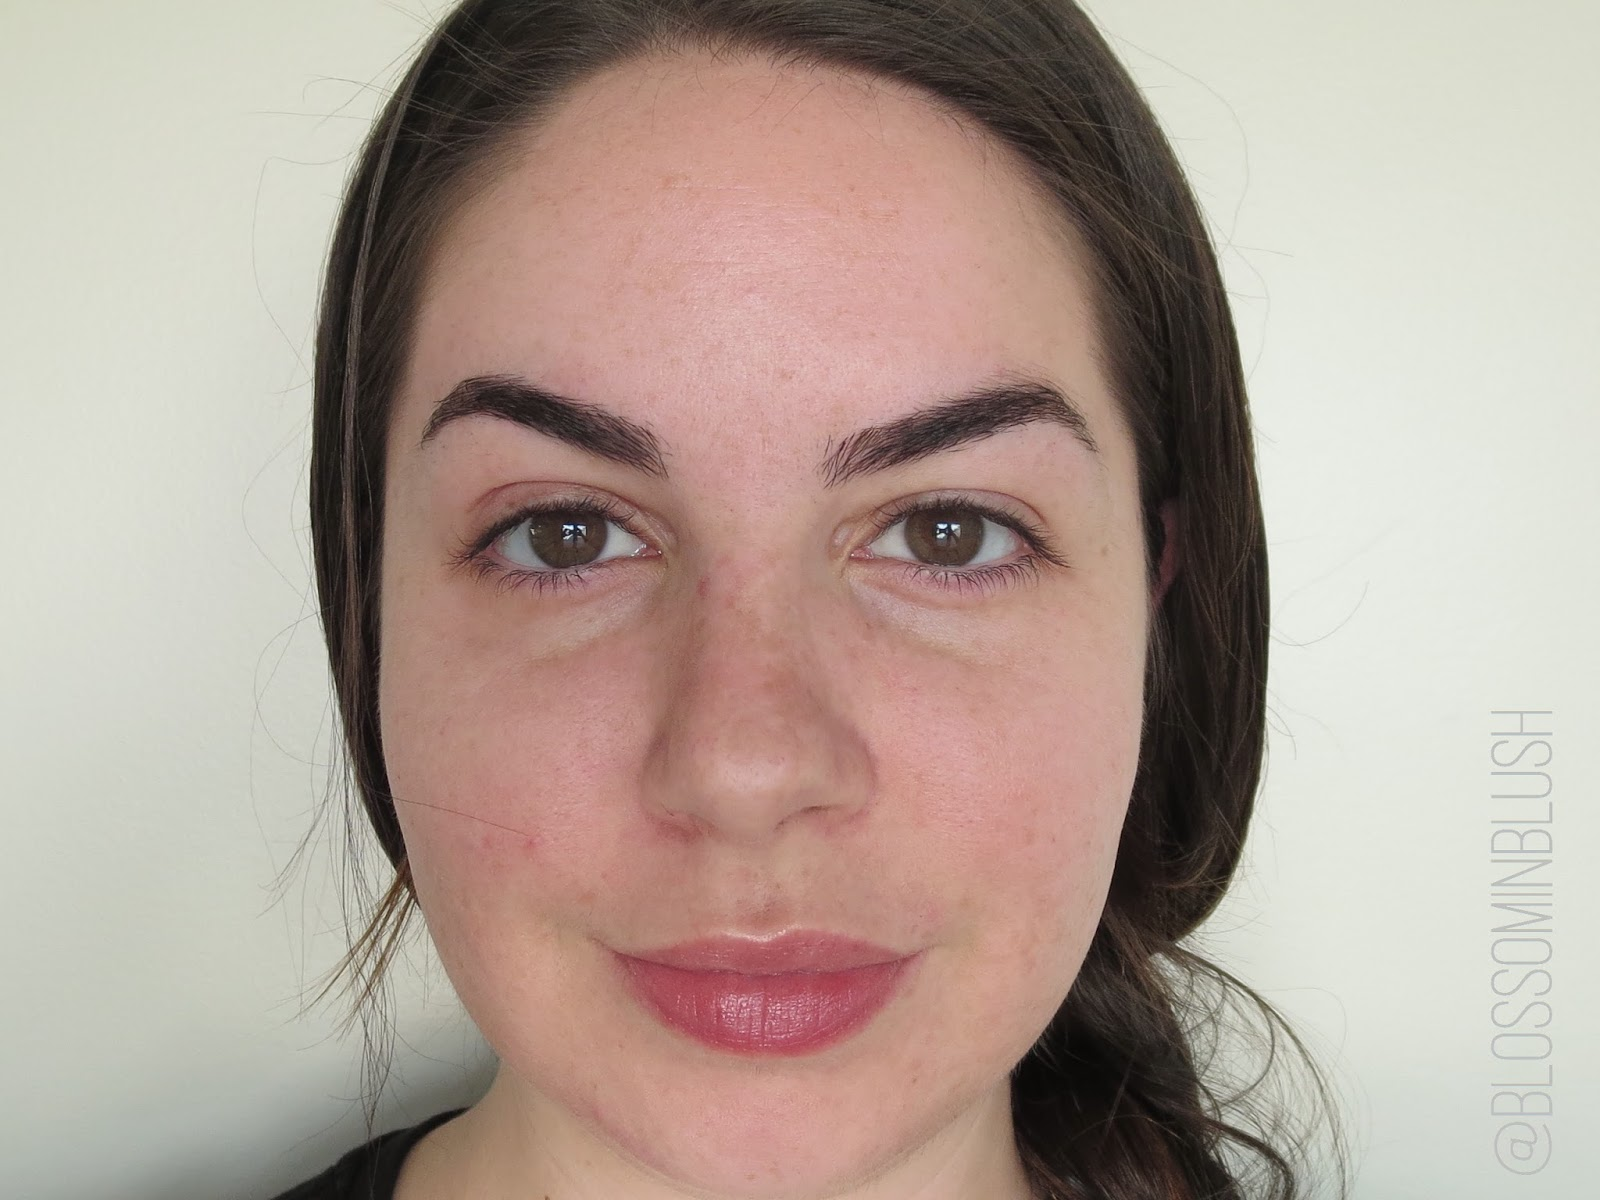 Product Review | No 7 Lift & Luminate Foundation / Blossom In Blush